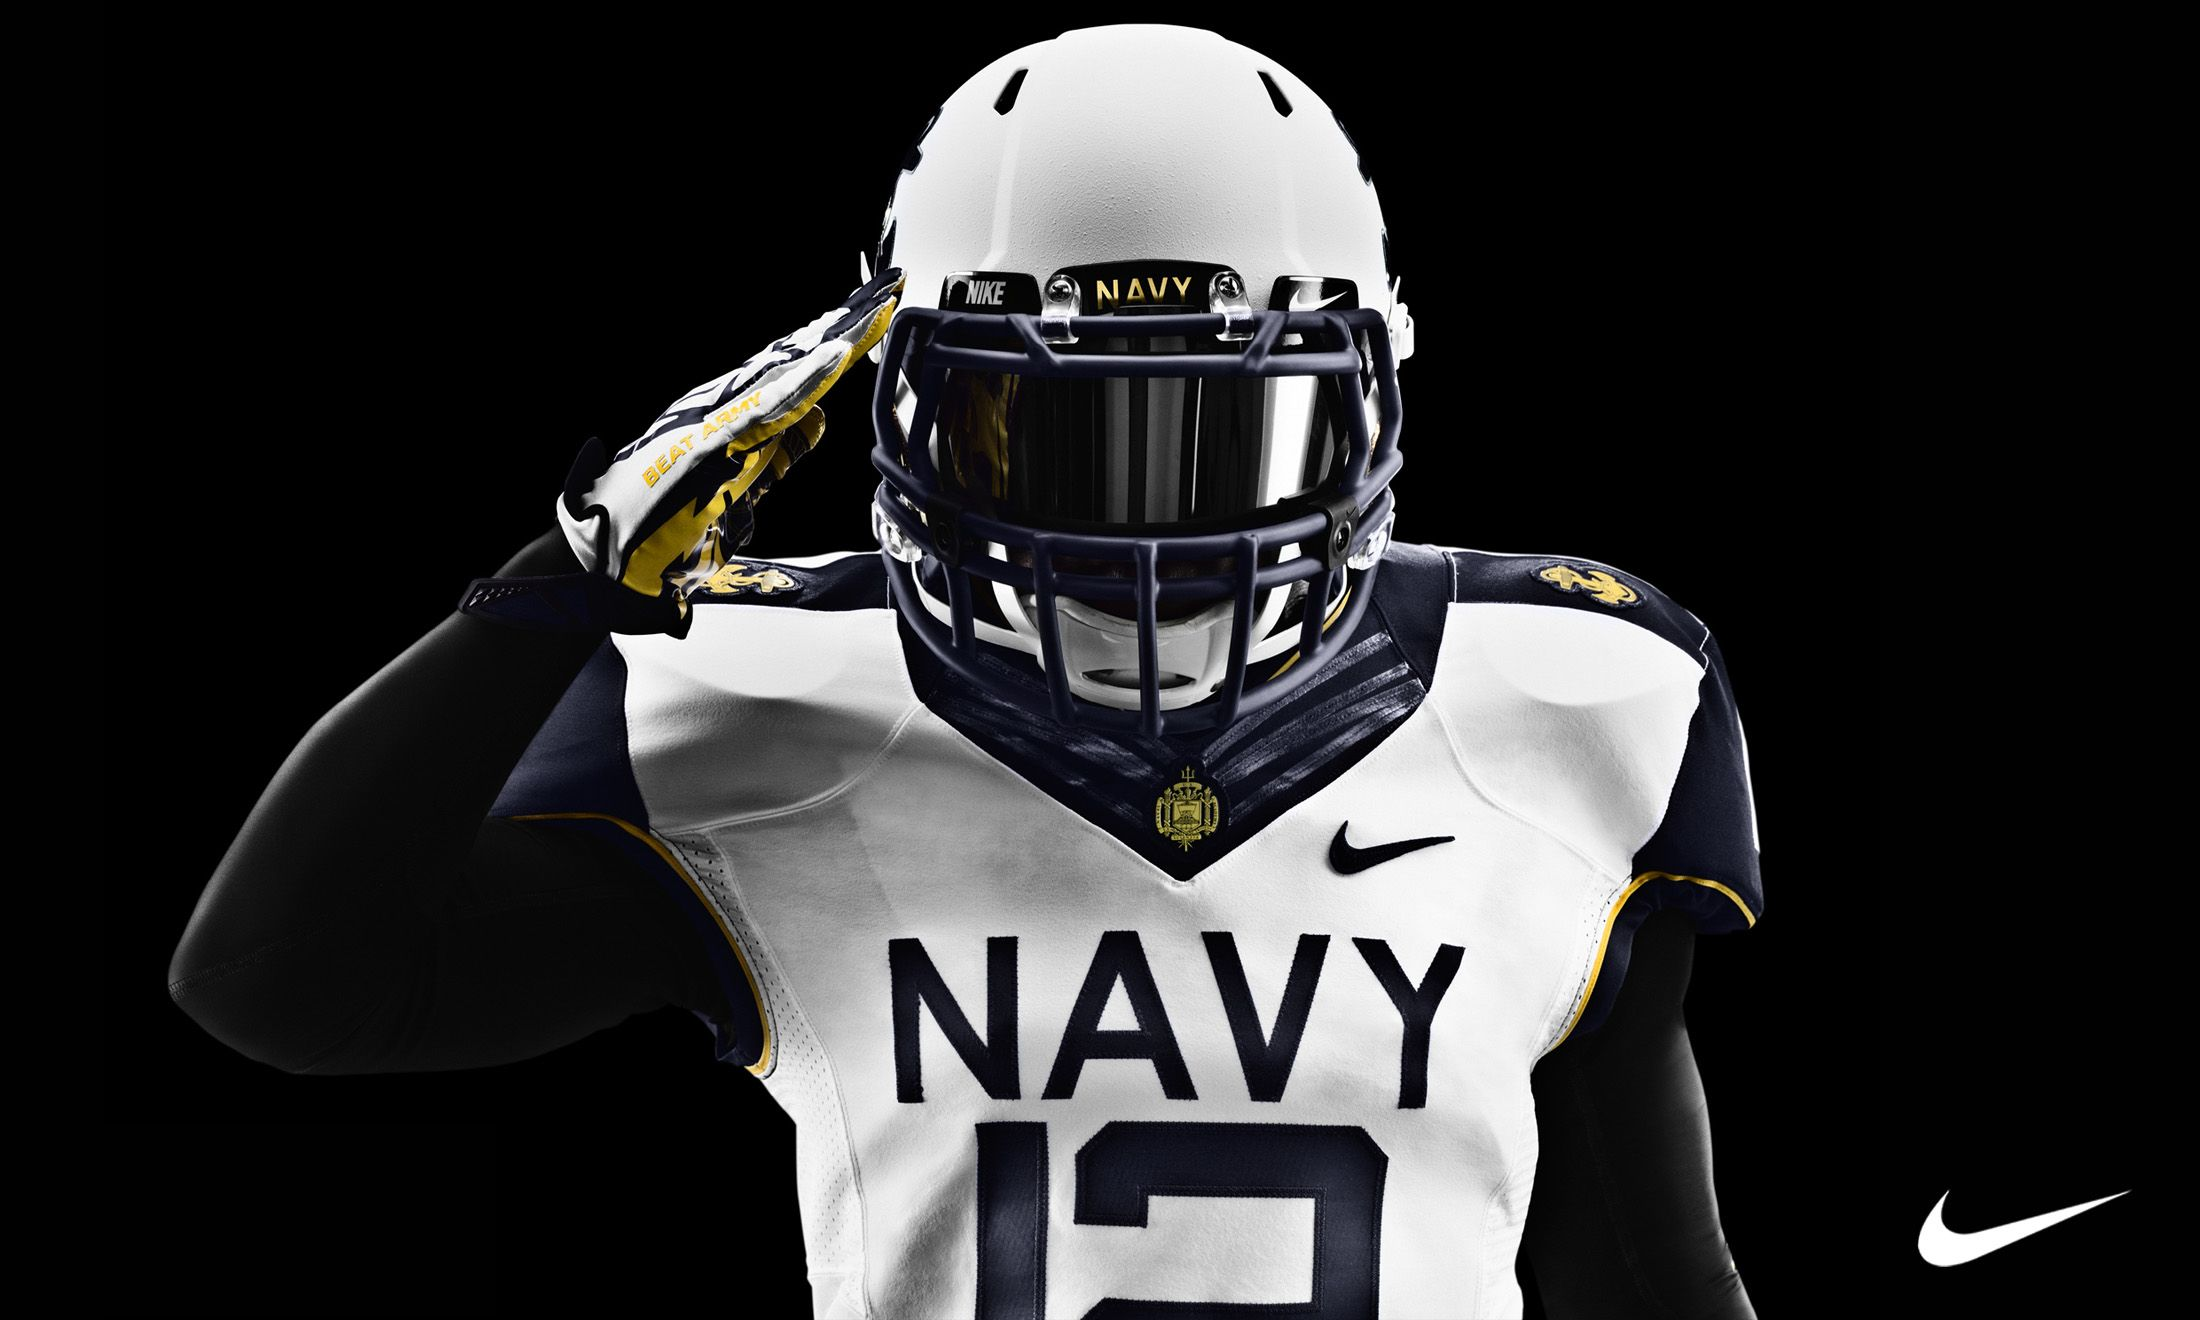 Nike Pro Combat Wallpaper Pics Navy Football College Football Uniforms Navy Midshipmen